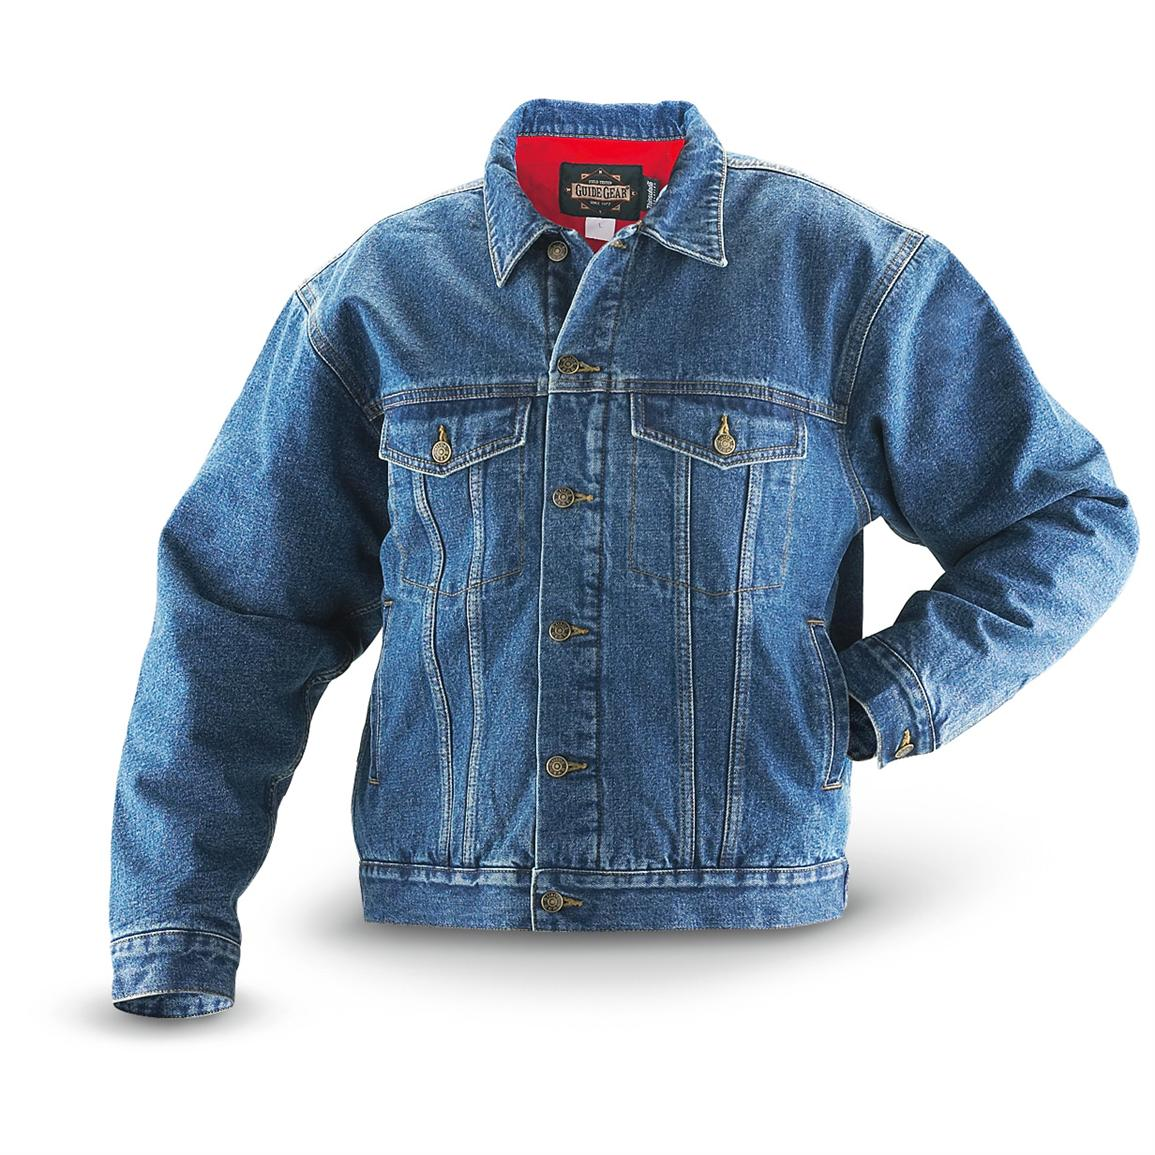 I-N-C Mens Faux Leather Denim Jean Jacket. Sold by Tags Weekly. $ $ MPD Womens Fall Floral Denim Jacket. Sold by BHFO. $ $ Toughskins Girls' Denim Jacket. Sold by Sears. $ $ KIKY Women Fashion Two Pieces Set Hooded Vest and Long Sleeve Denim Jacket. Sold by New-Horizon.